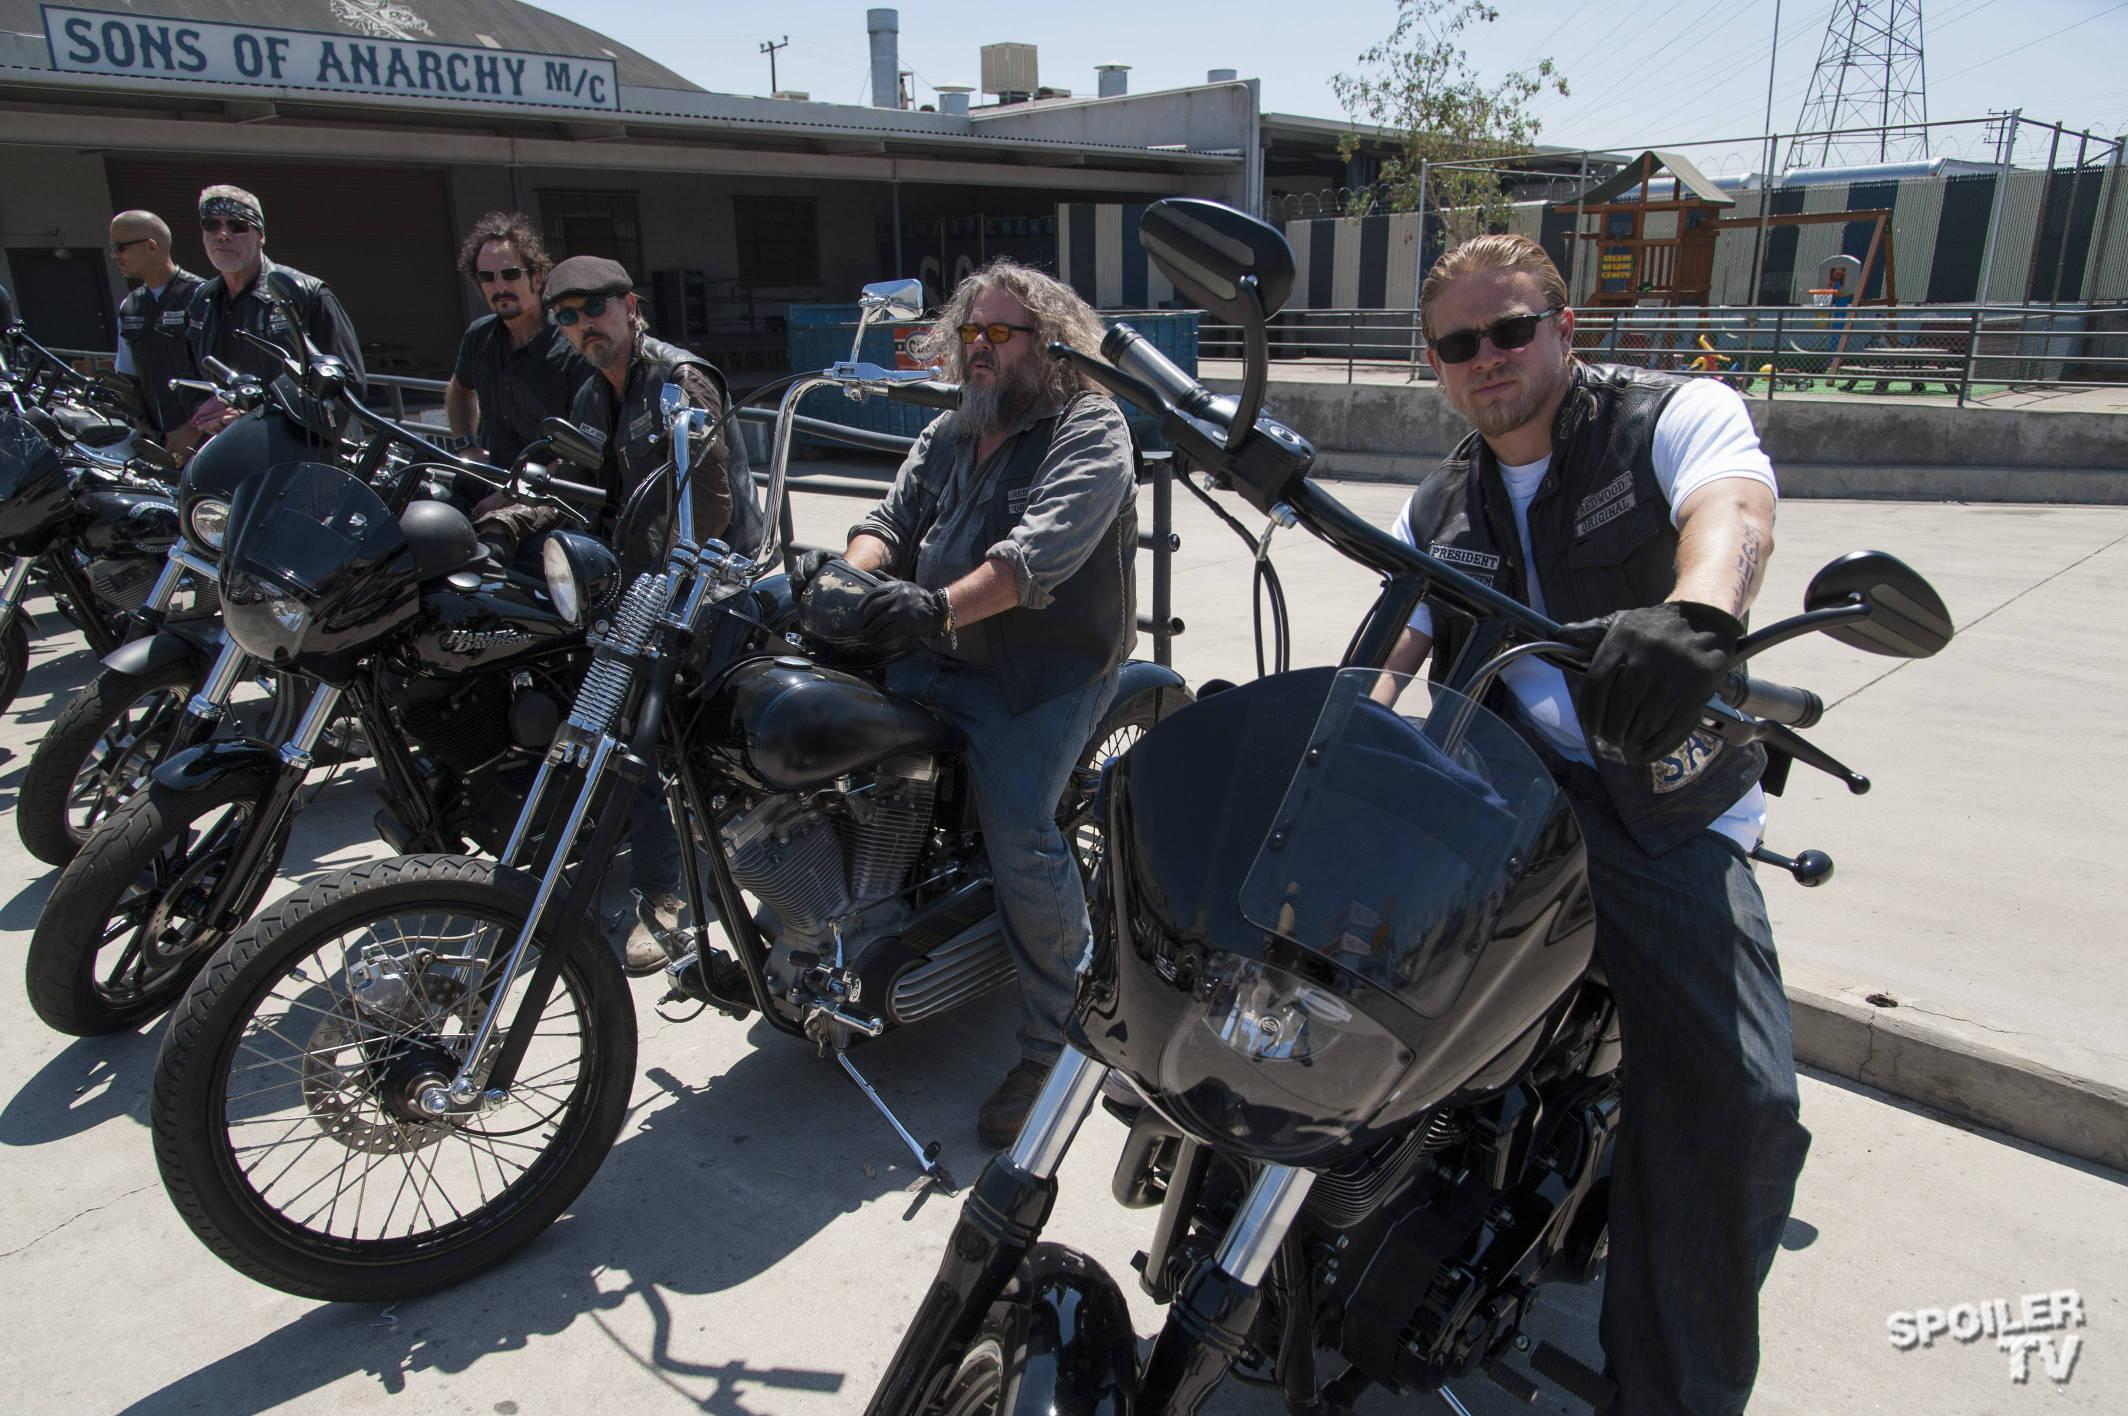 19 sons of anarchy - photo #22